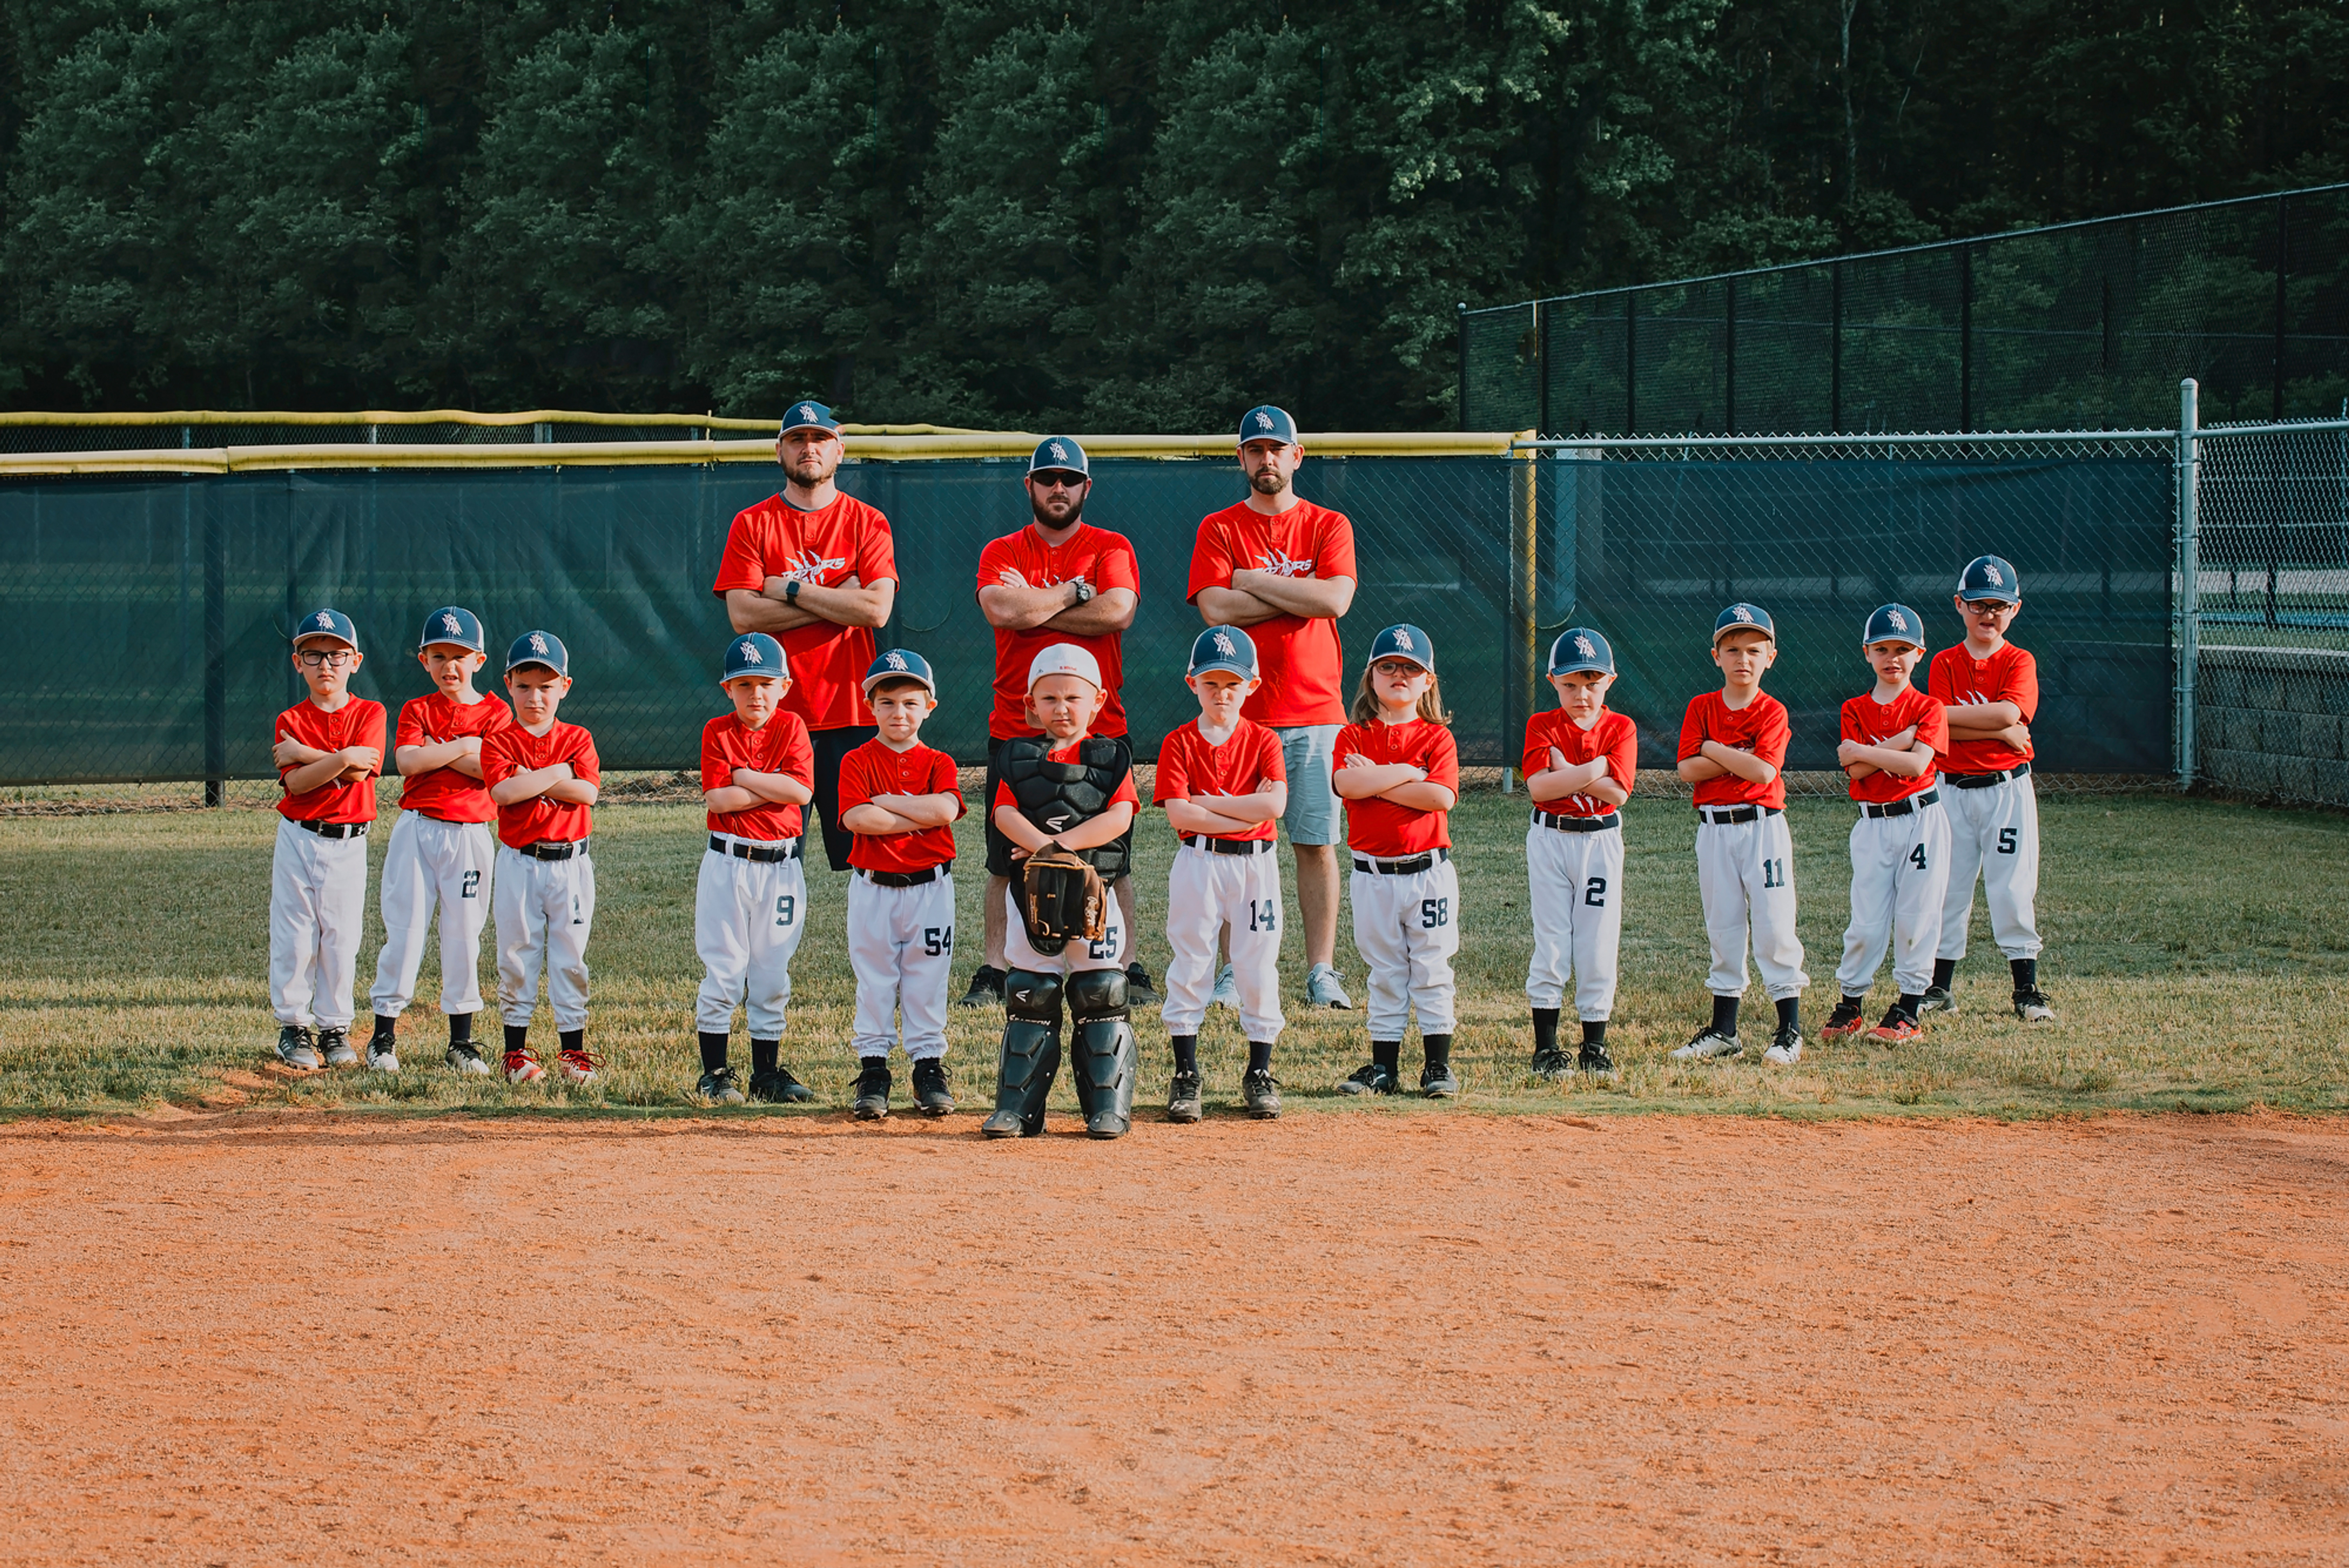 Team and Sports Photography